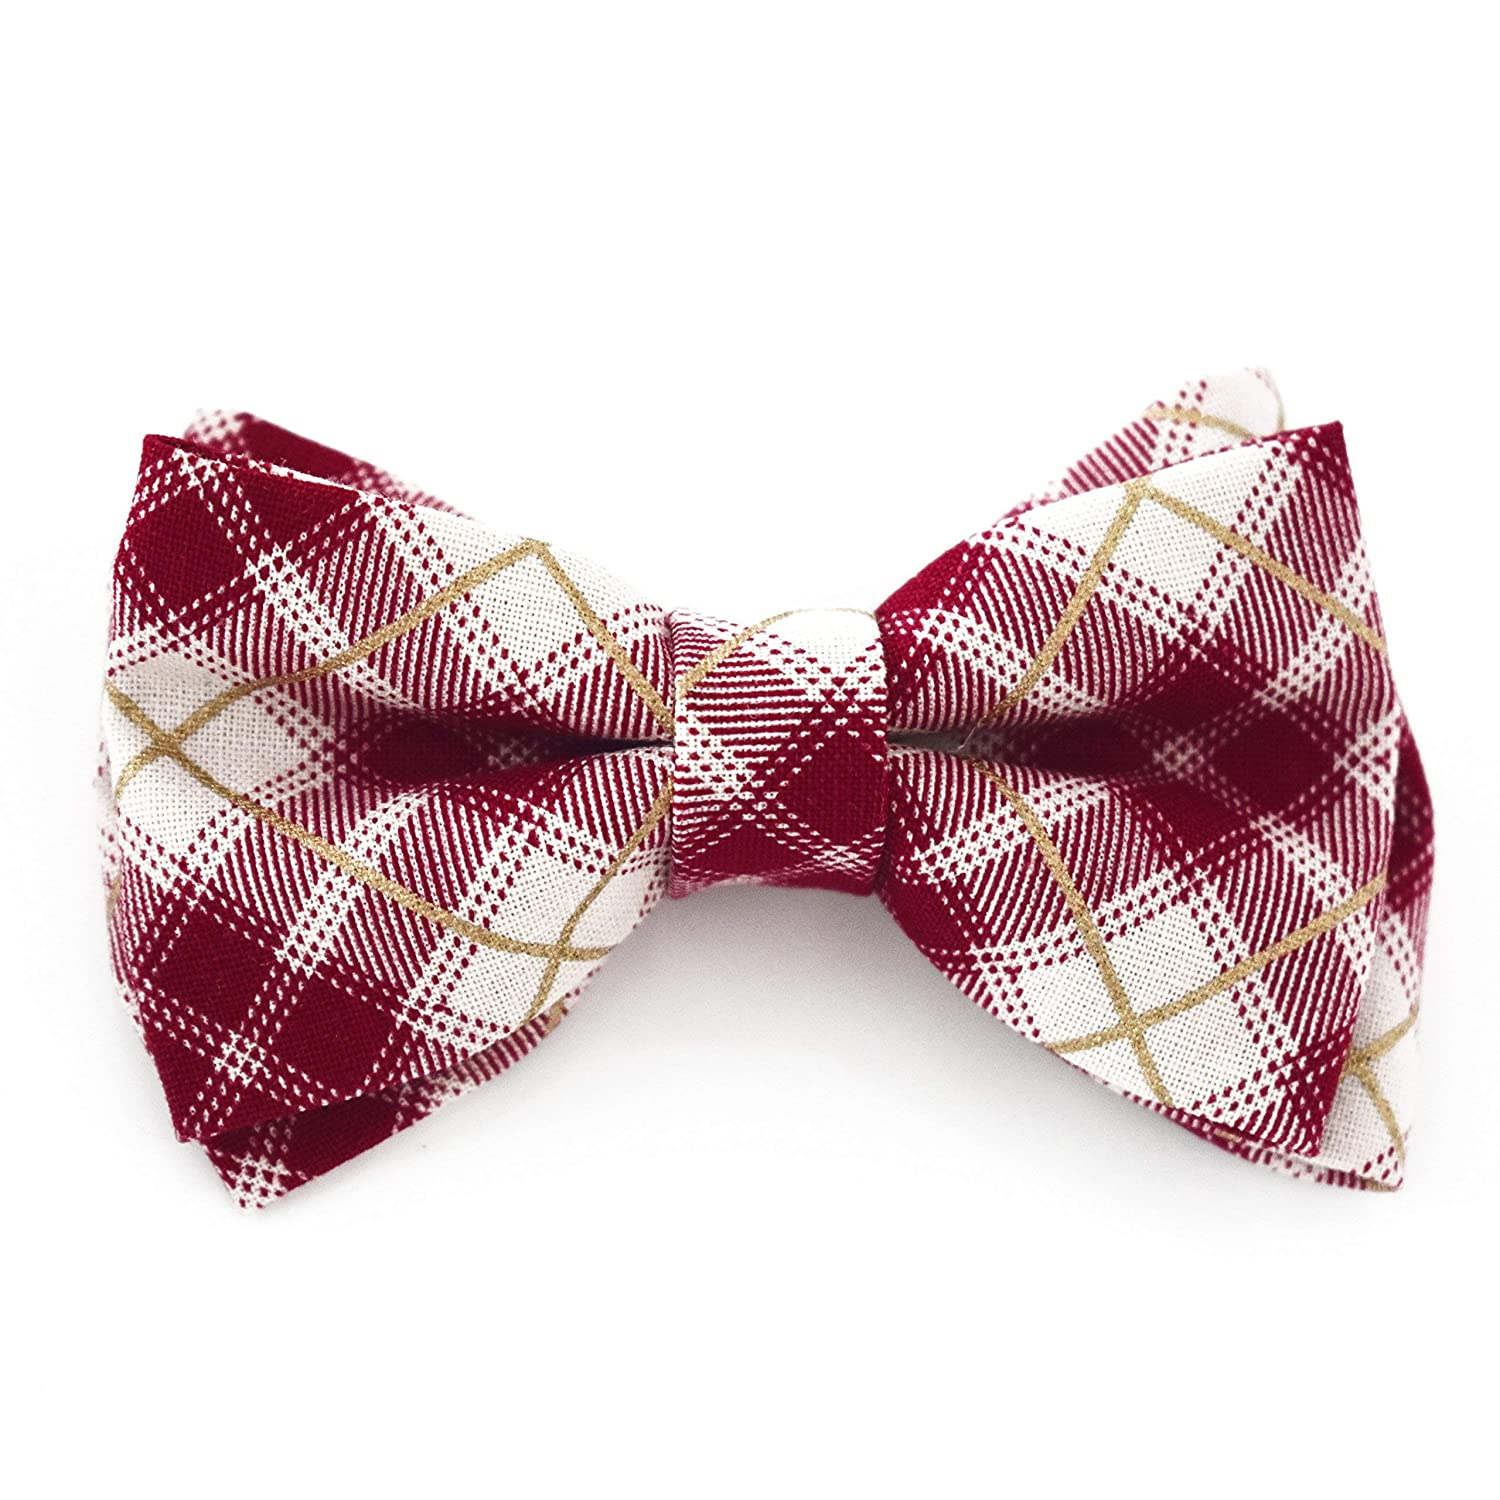 Red Ivory Gold Plaid Tartan Bow Tie Clip On Fits Boy Handmade (One Size Fits All) Holiday Bow Tie - by Blossom Design